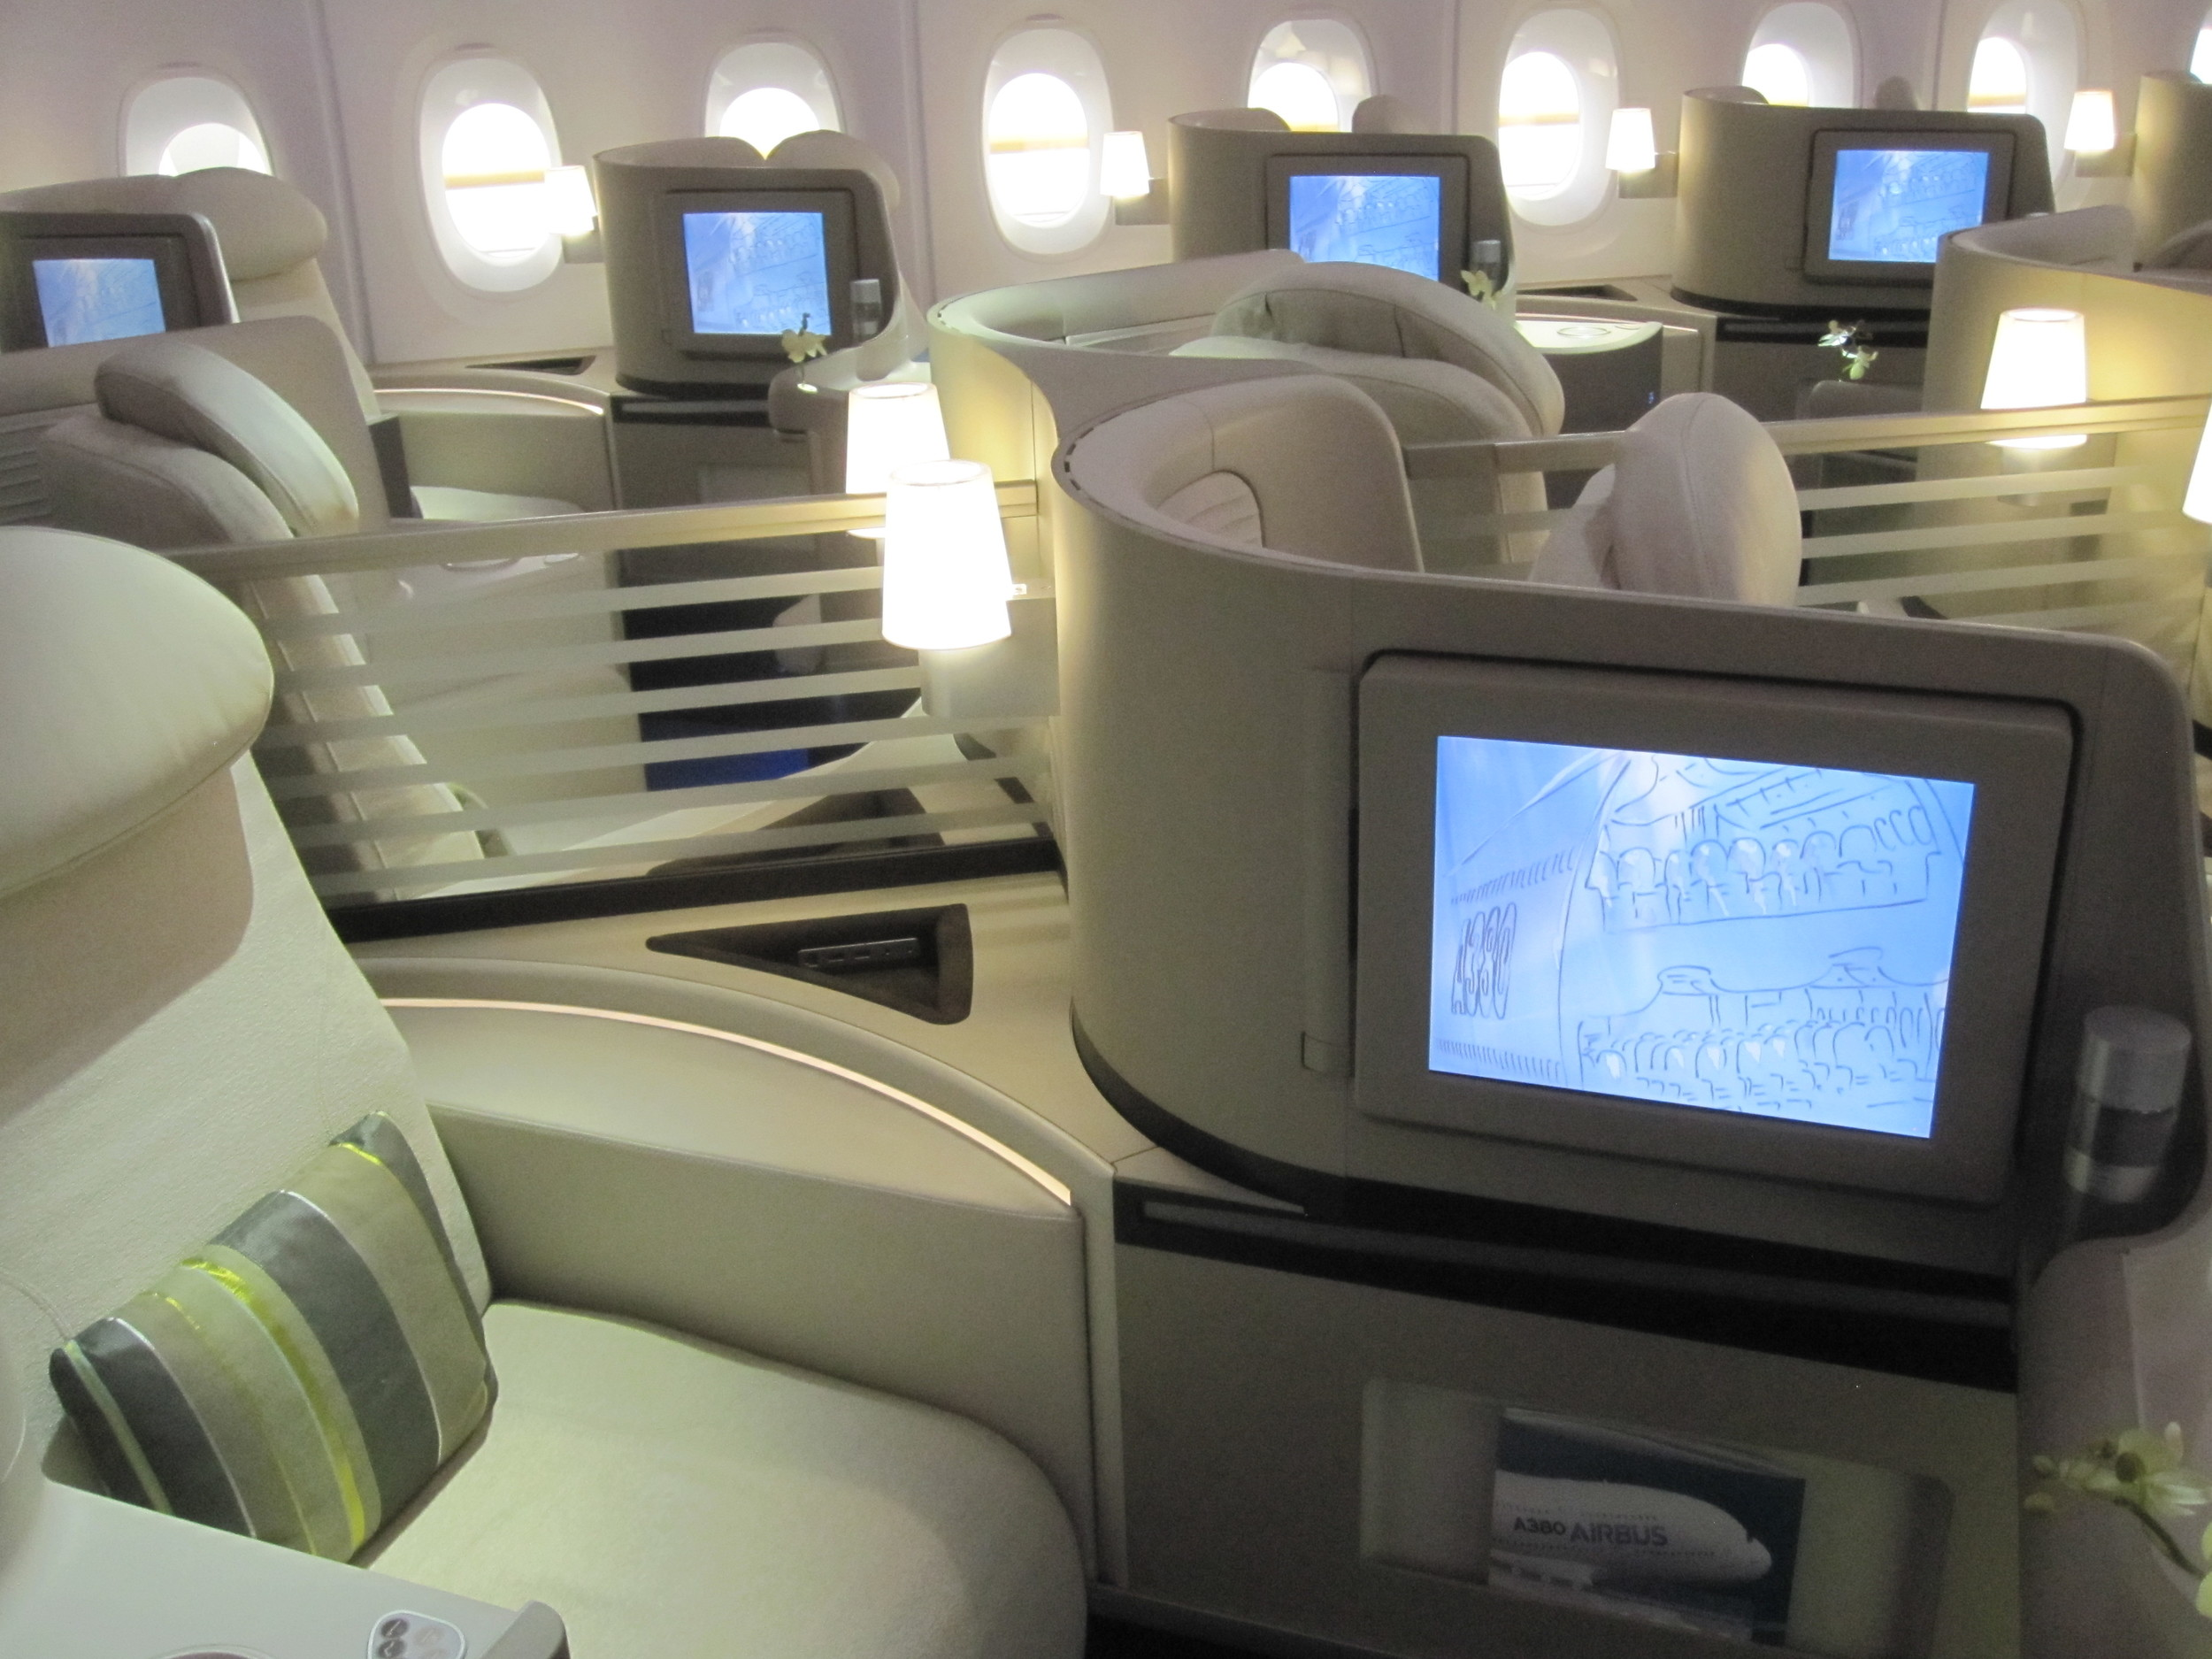 Feeling like going somewhere? This is one of the premium cabin concepts for the Airbus A380 exhibited at the mock-up center